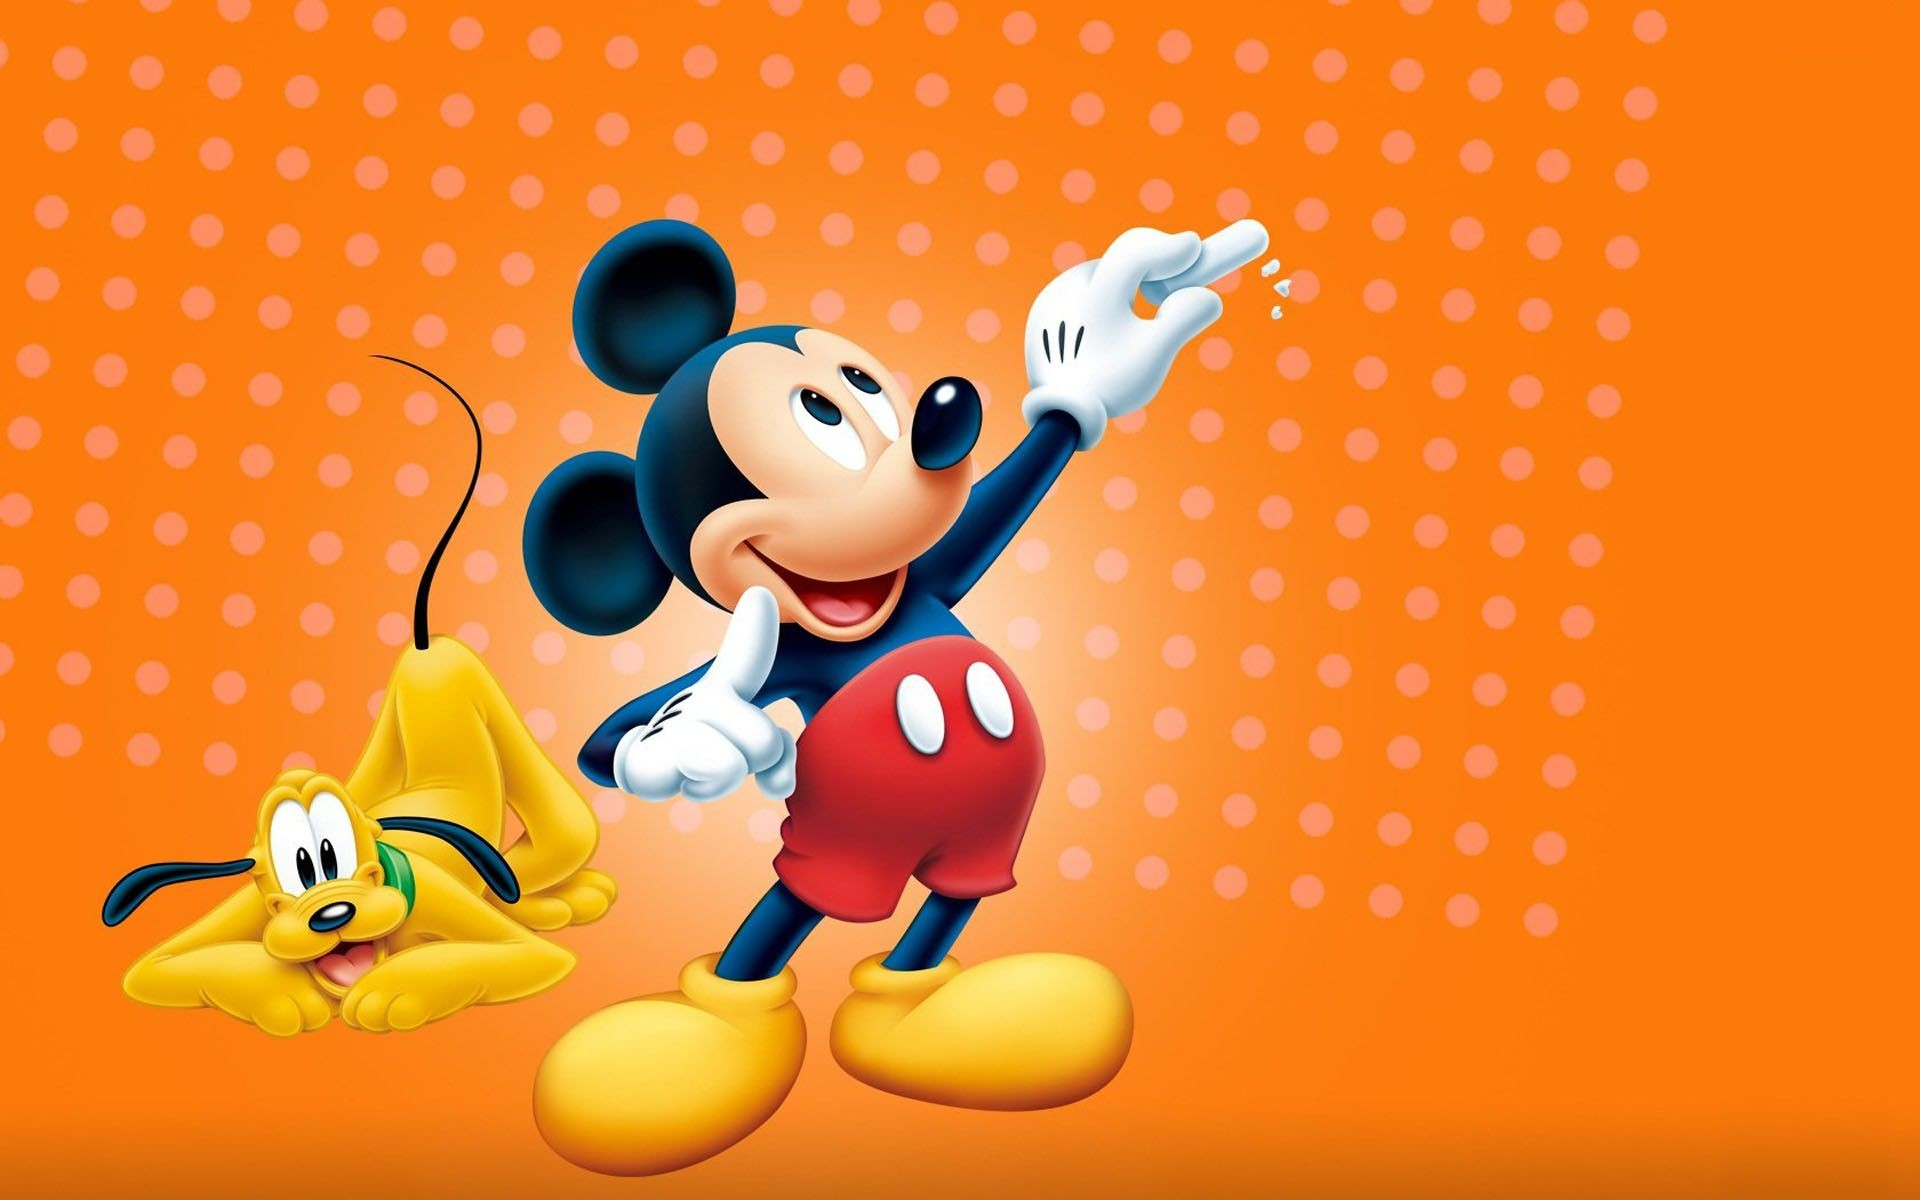 Mickey Mouse HD Images : Get Free top quality Mickey Mouse HD Images for  your desktop